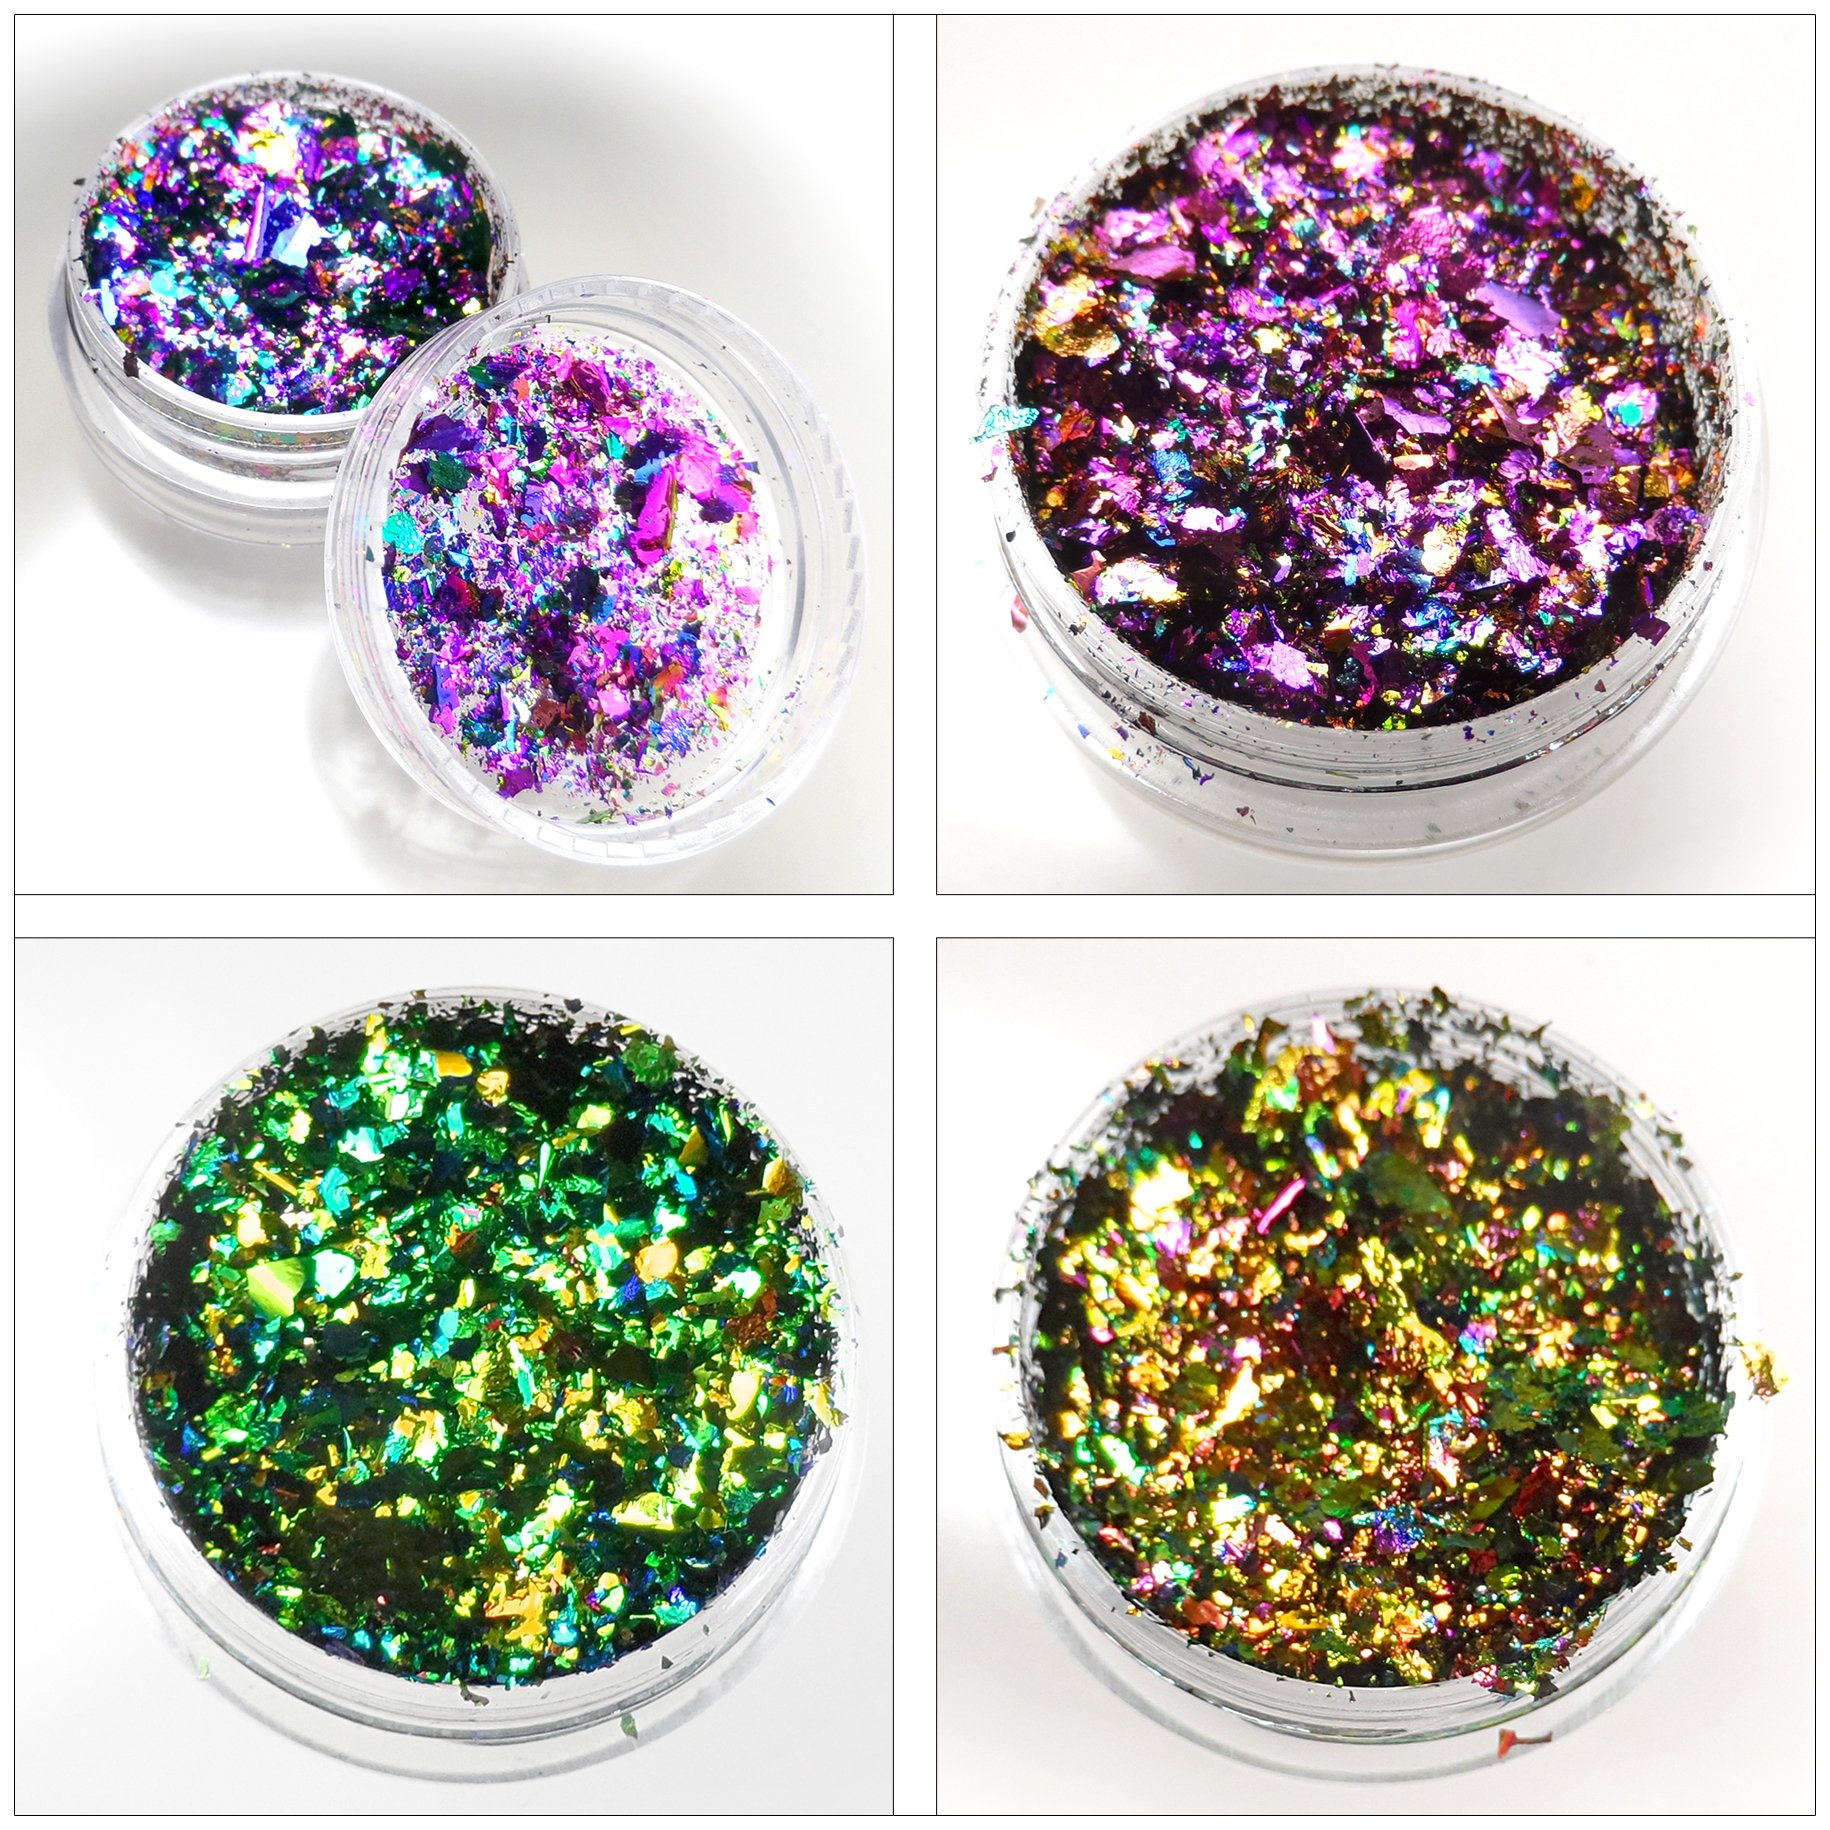 Lumiere Lusters Holographic Metallic Foil Art Pigments - Luxe Pack Sampler Multicolor Flakes